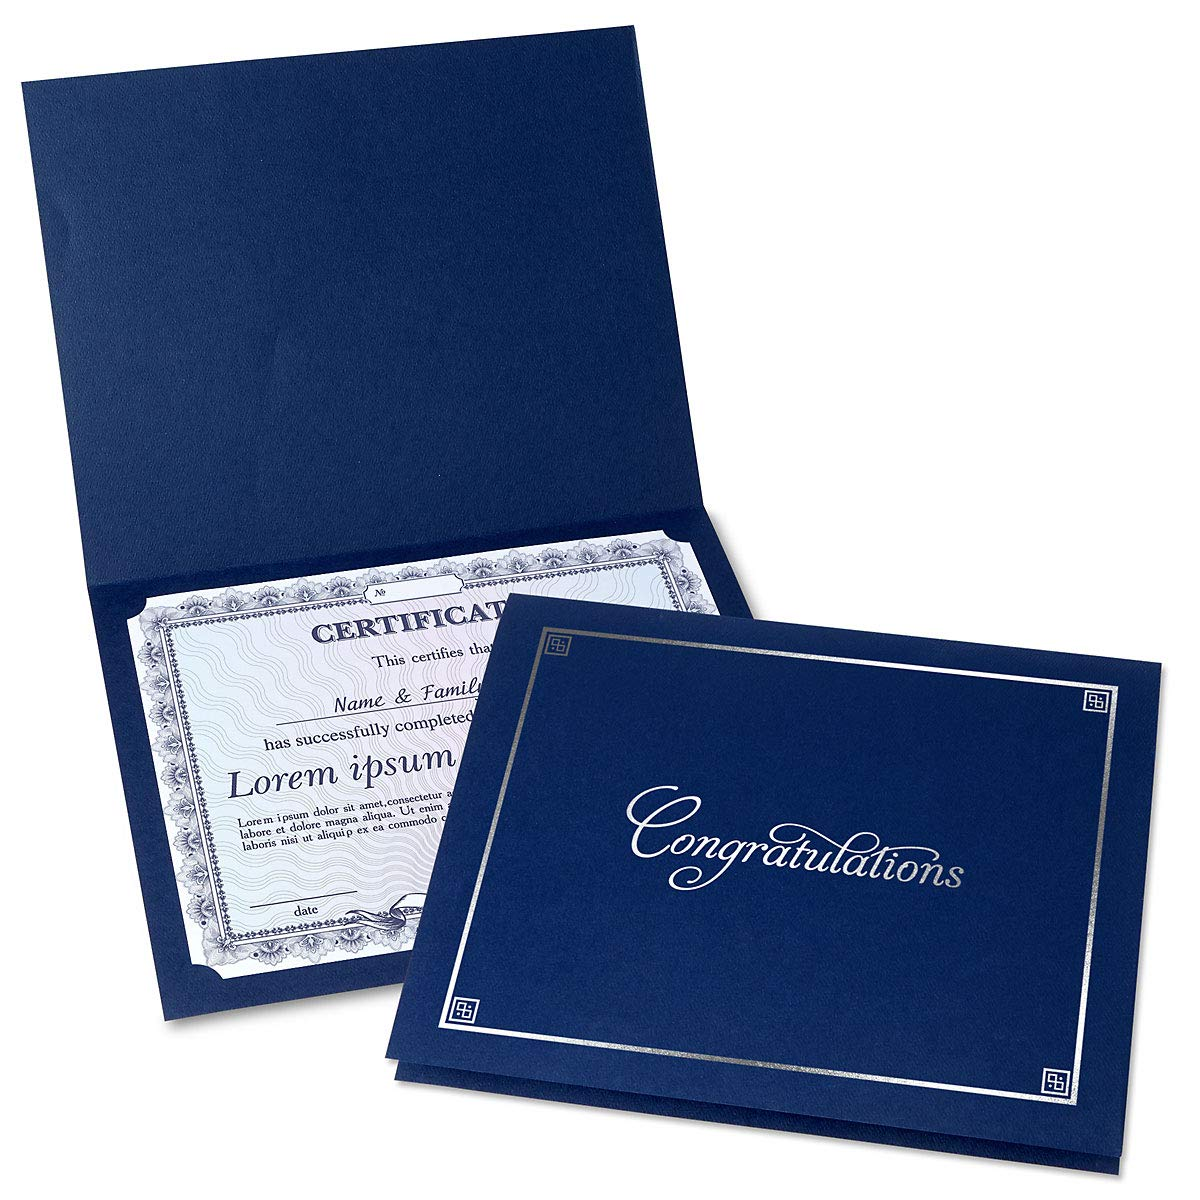 Congratulations Blue Certificate Folder with Silver Border - Set of 25, 9-1/2'' x 12'' Folded with Diecut Corners on 80 lb. Linen Cover Stock, Document Cover, Diploma Holder, Letter Sized Awards by Fine Stationery